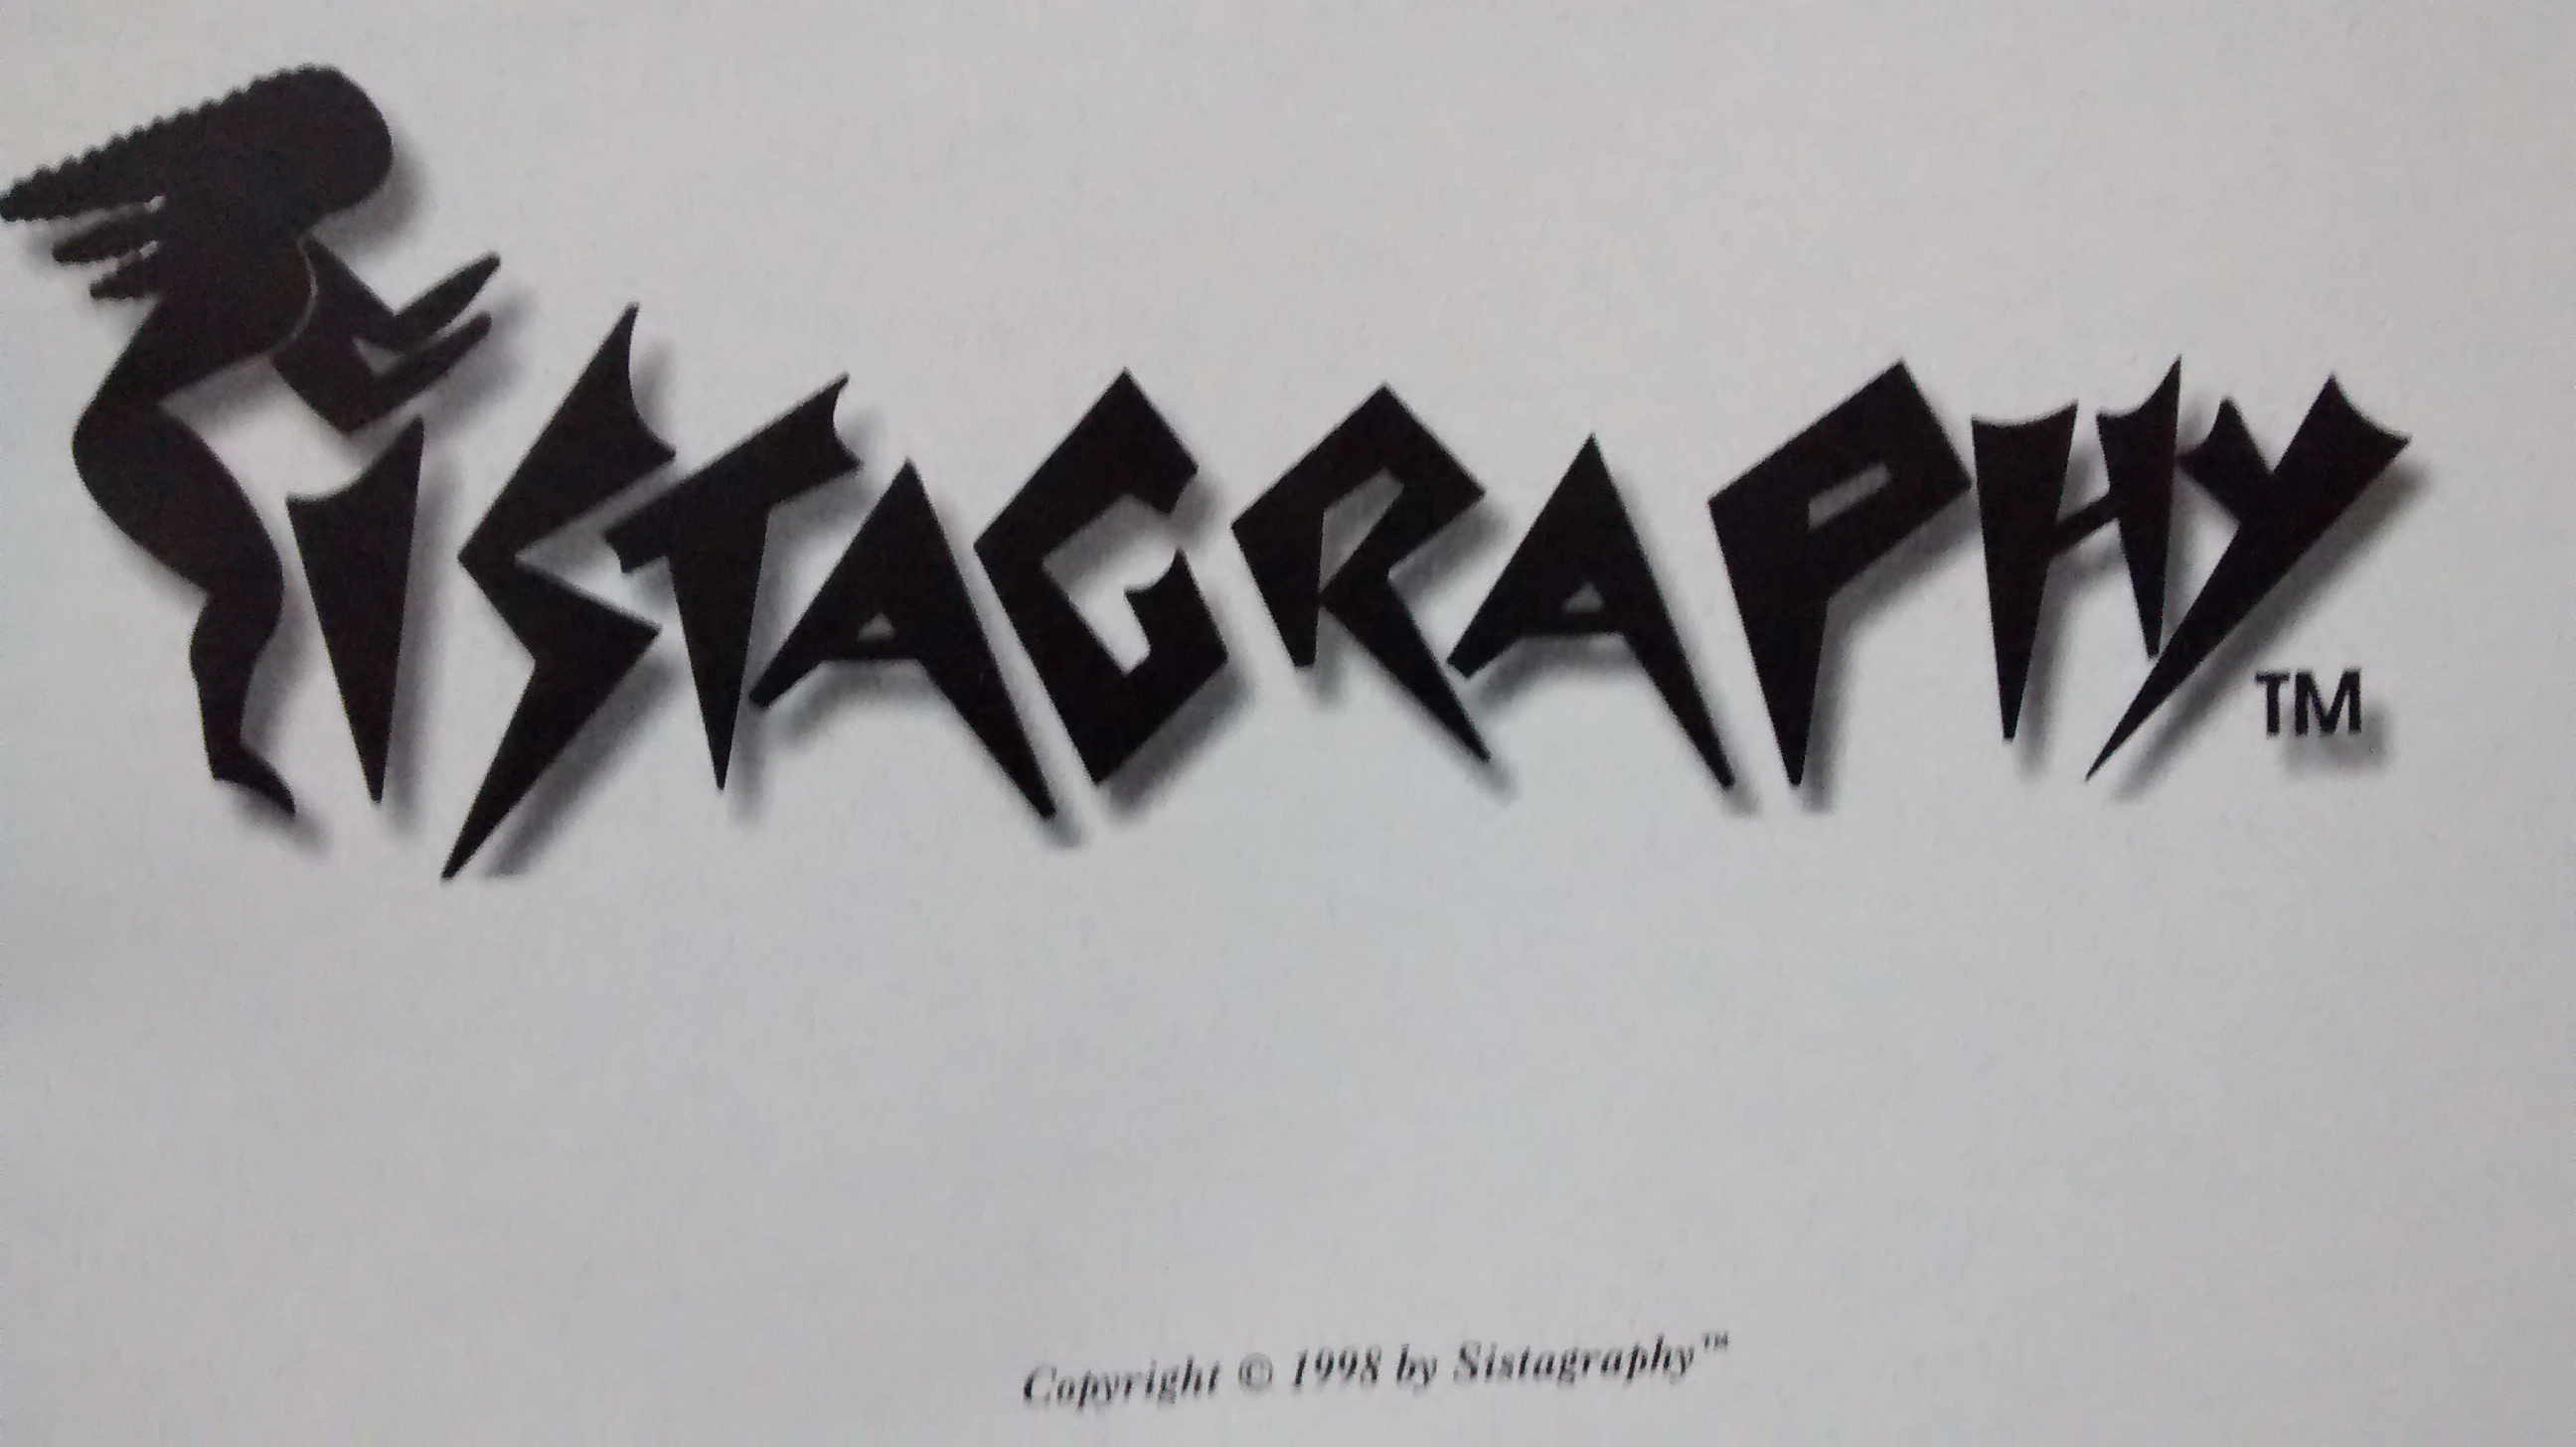 Sistagraphy